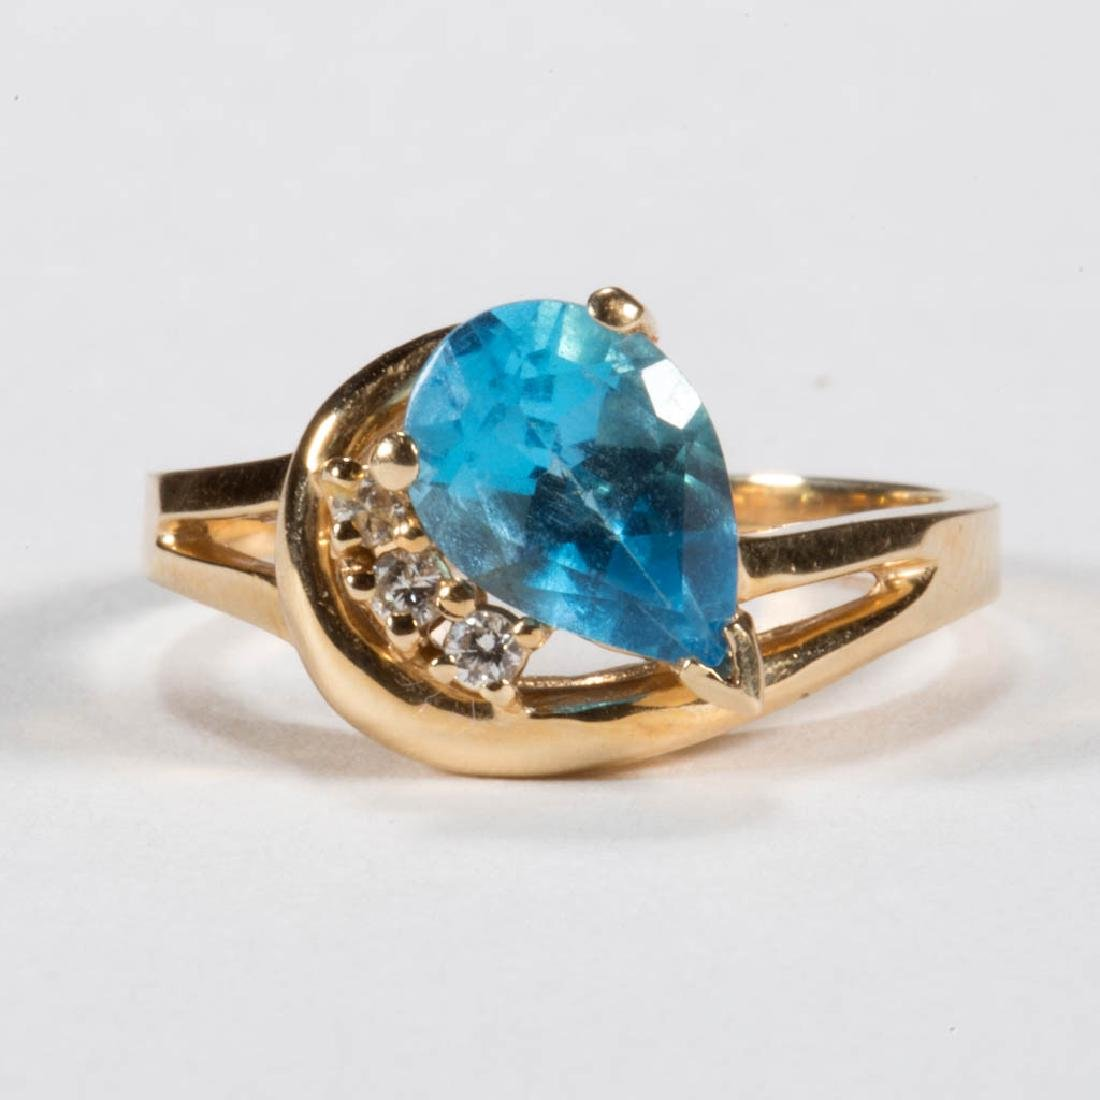 VINTAGE 14K GOLD AND BLUE TOPAZ LADY'S RING